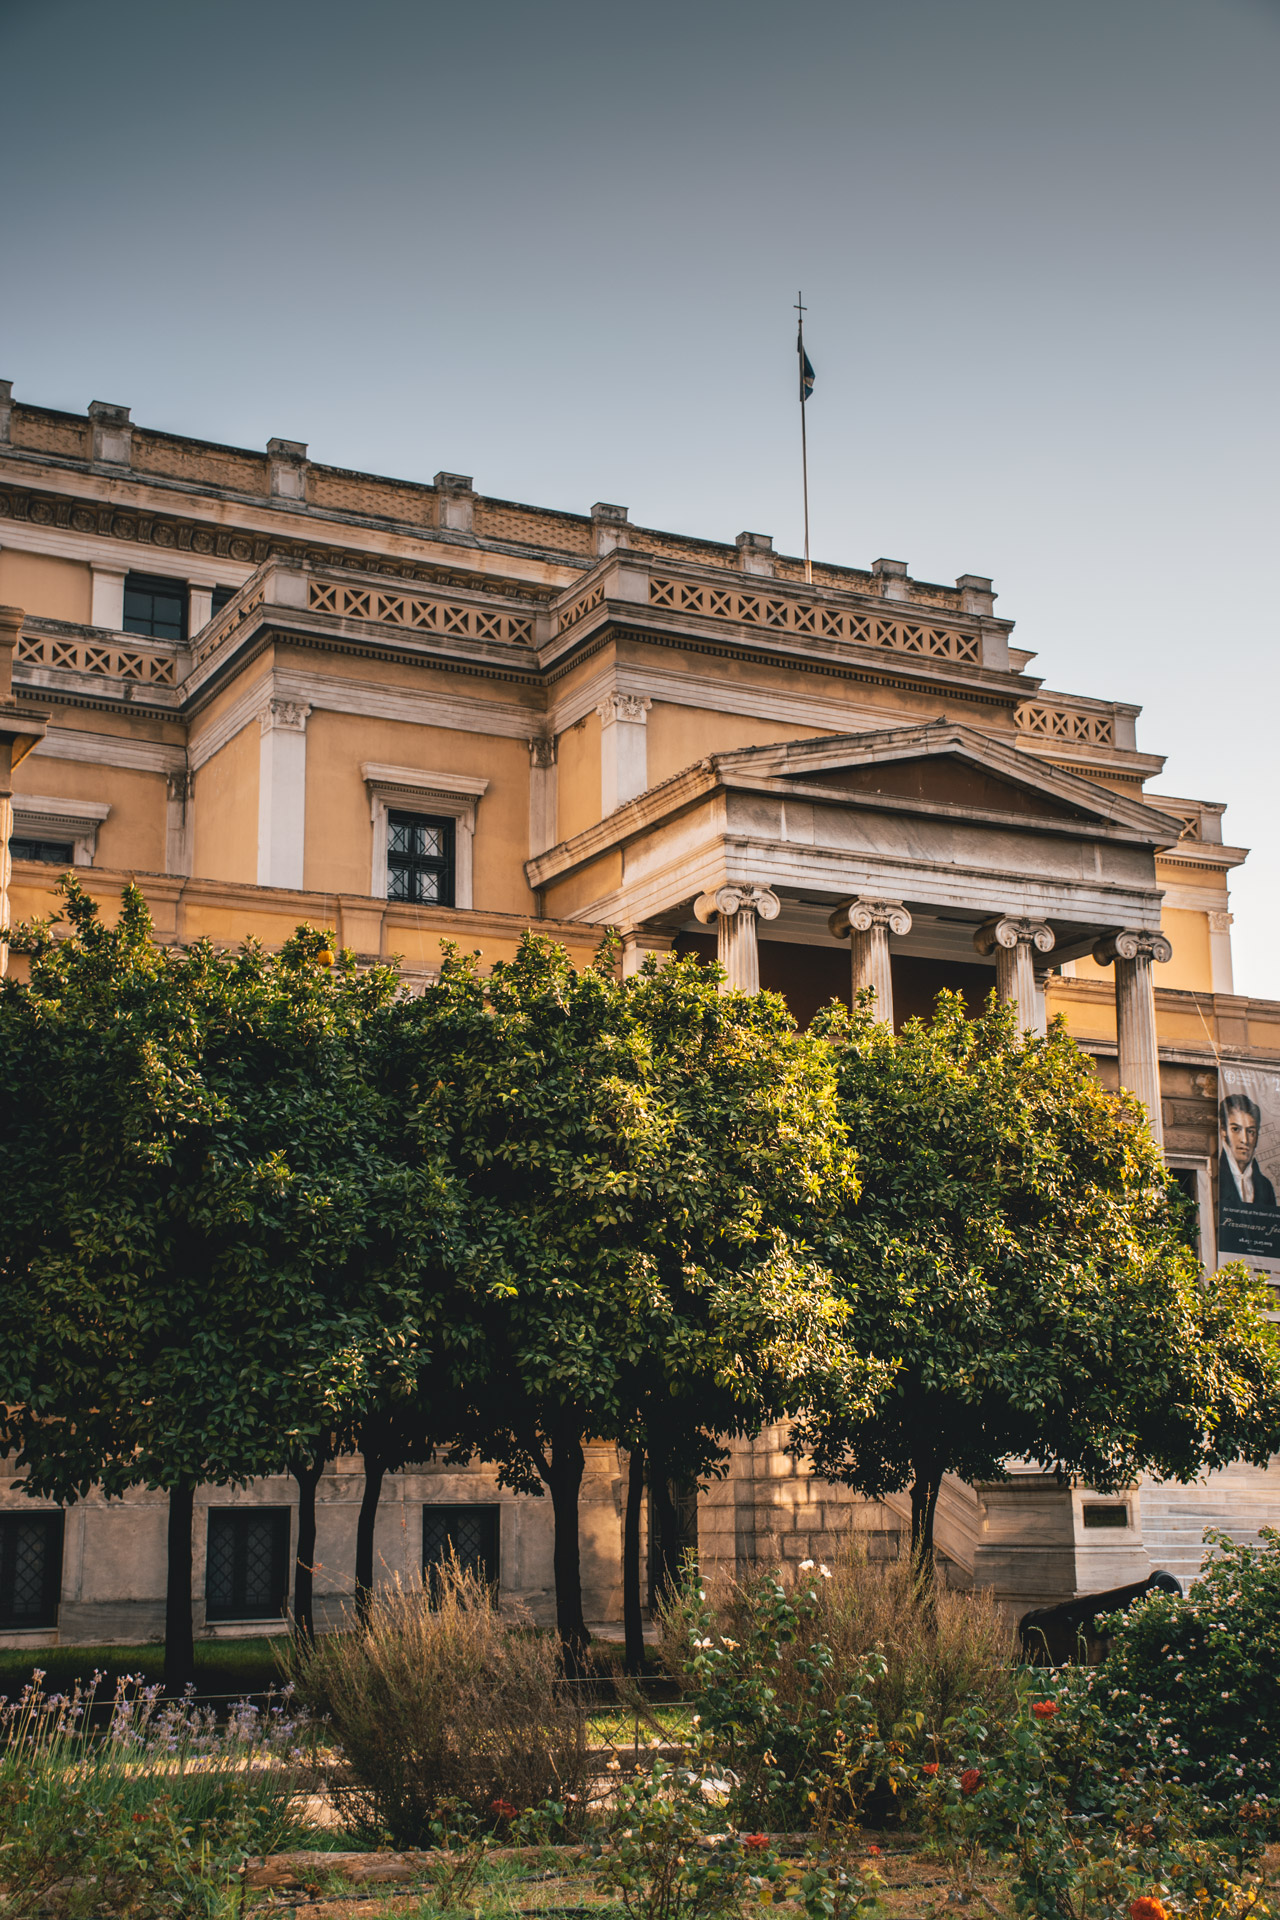 The Old Parliament House at Stadiou Street in Athens